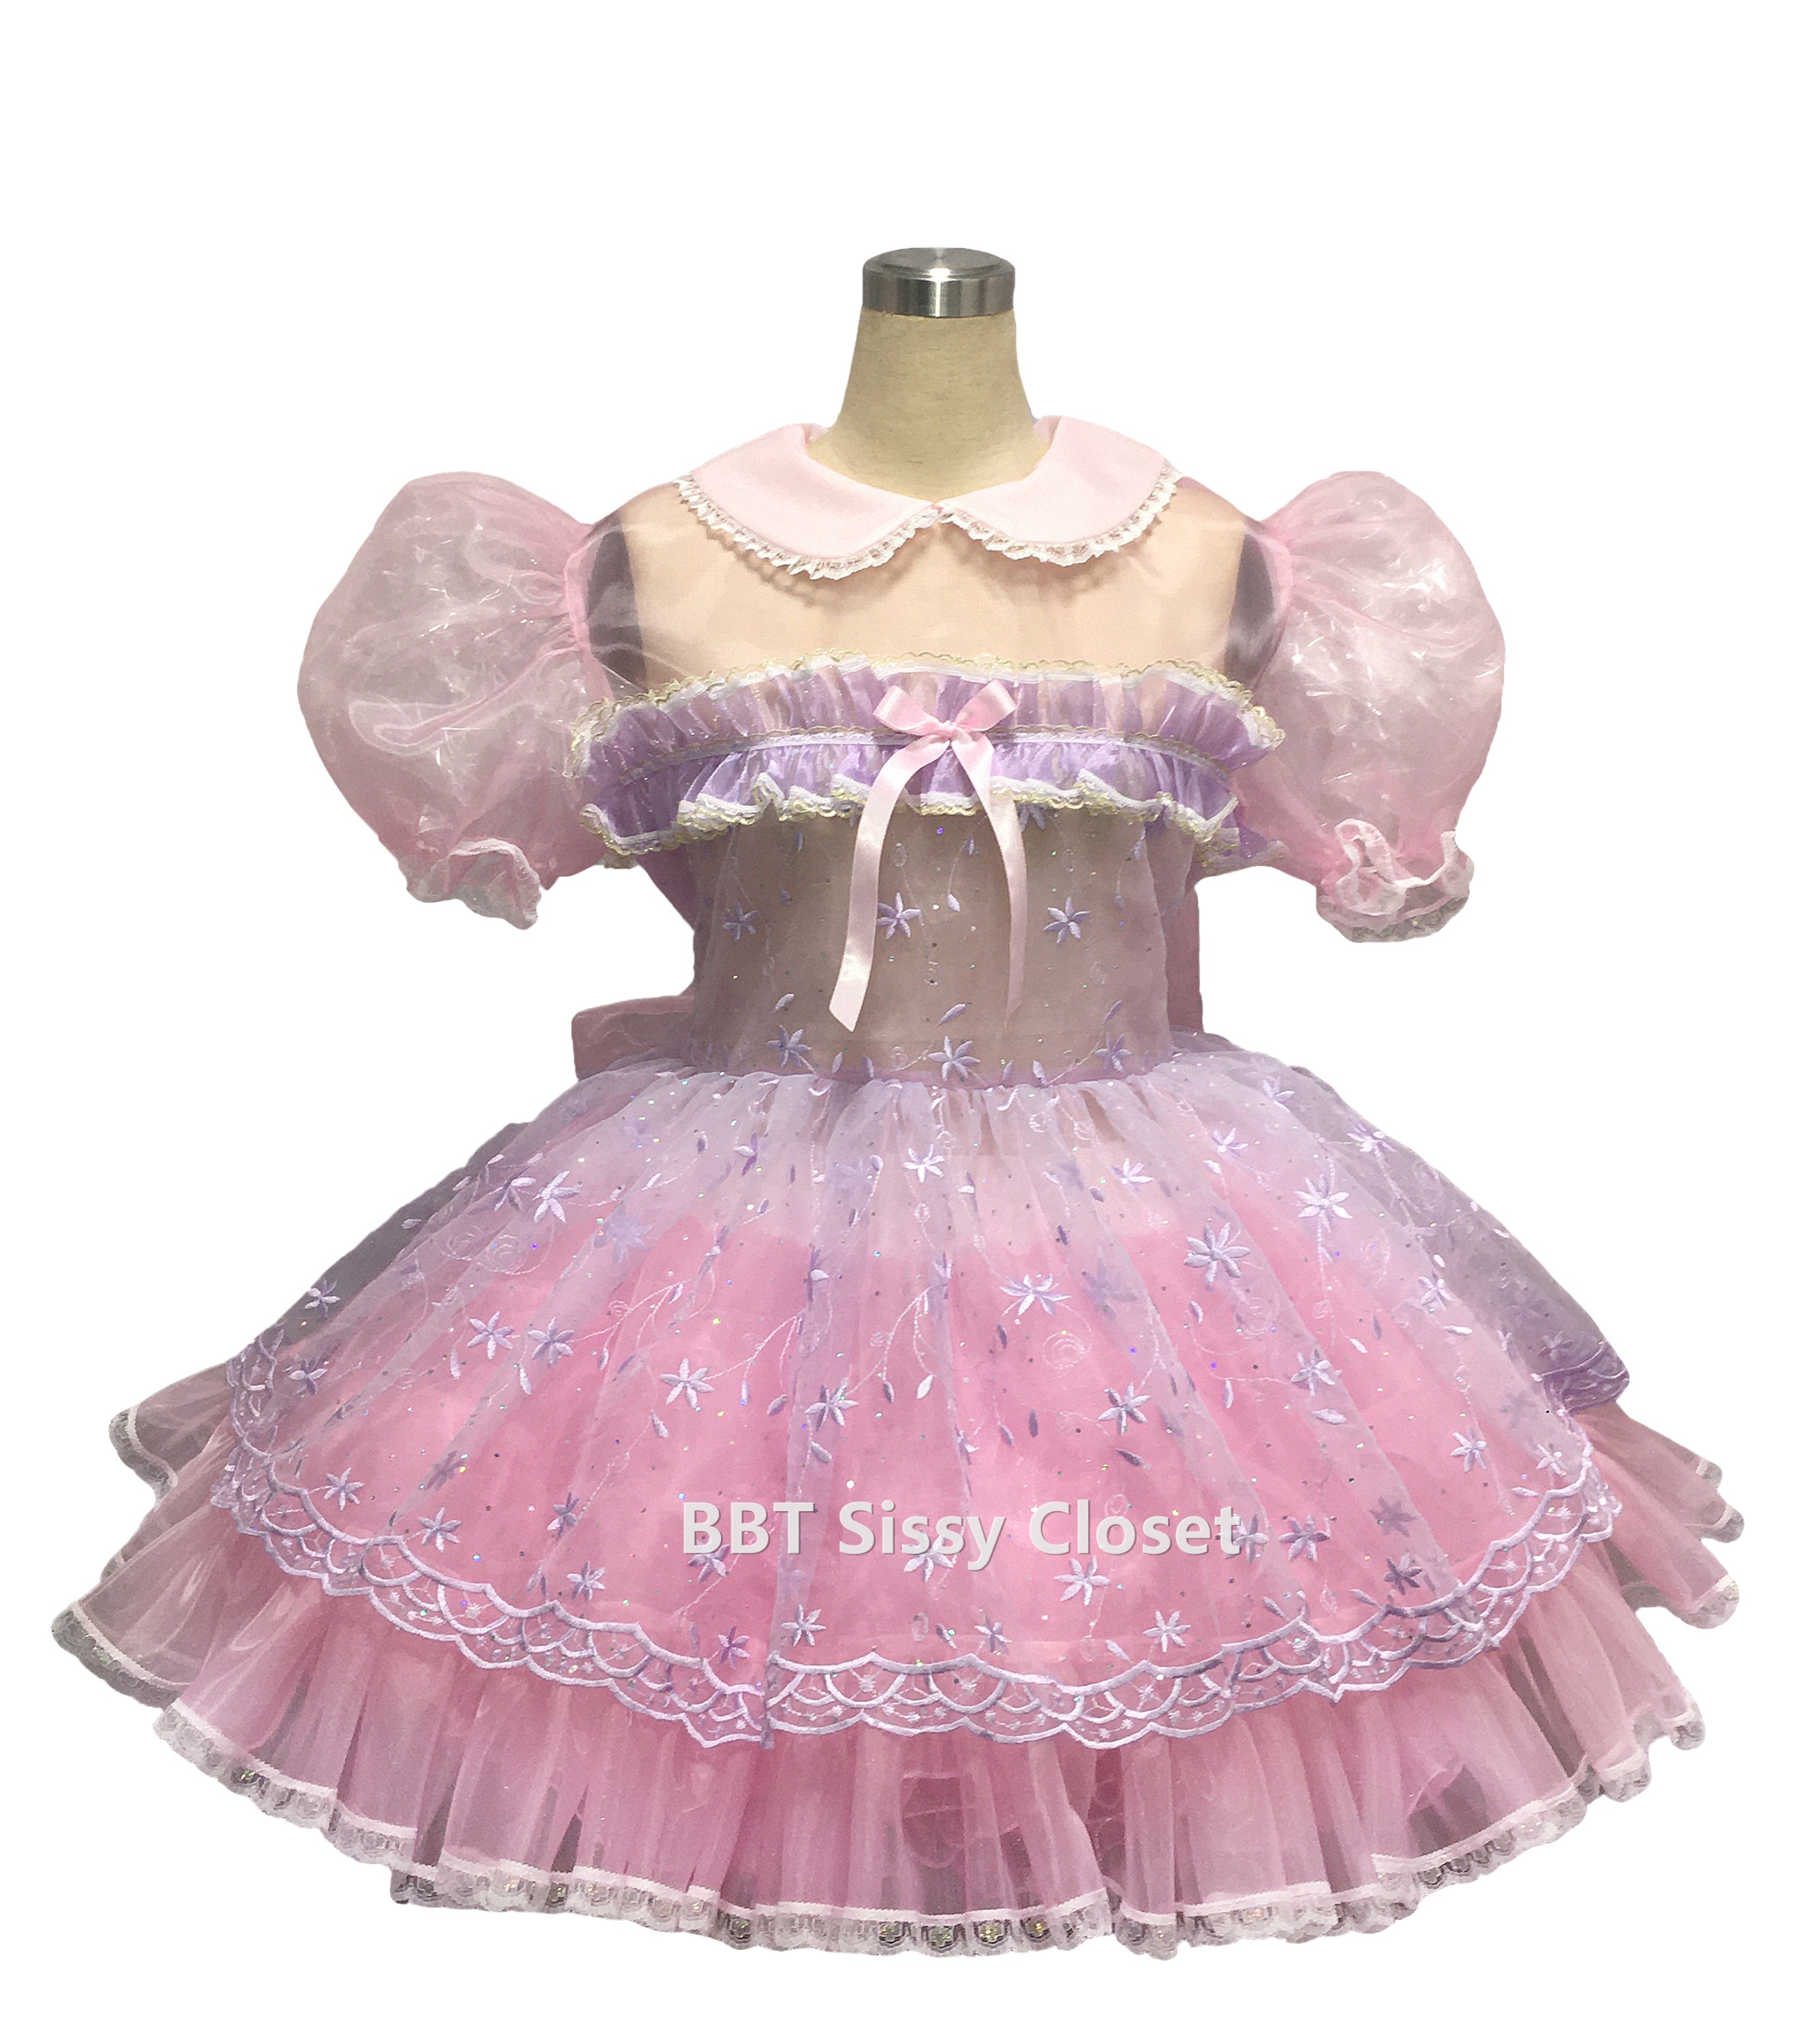 Adult Sissy Princess Dress